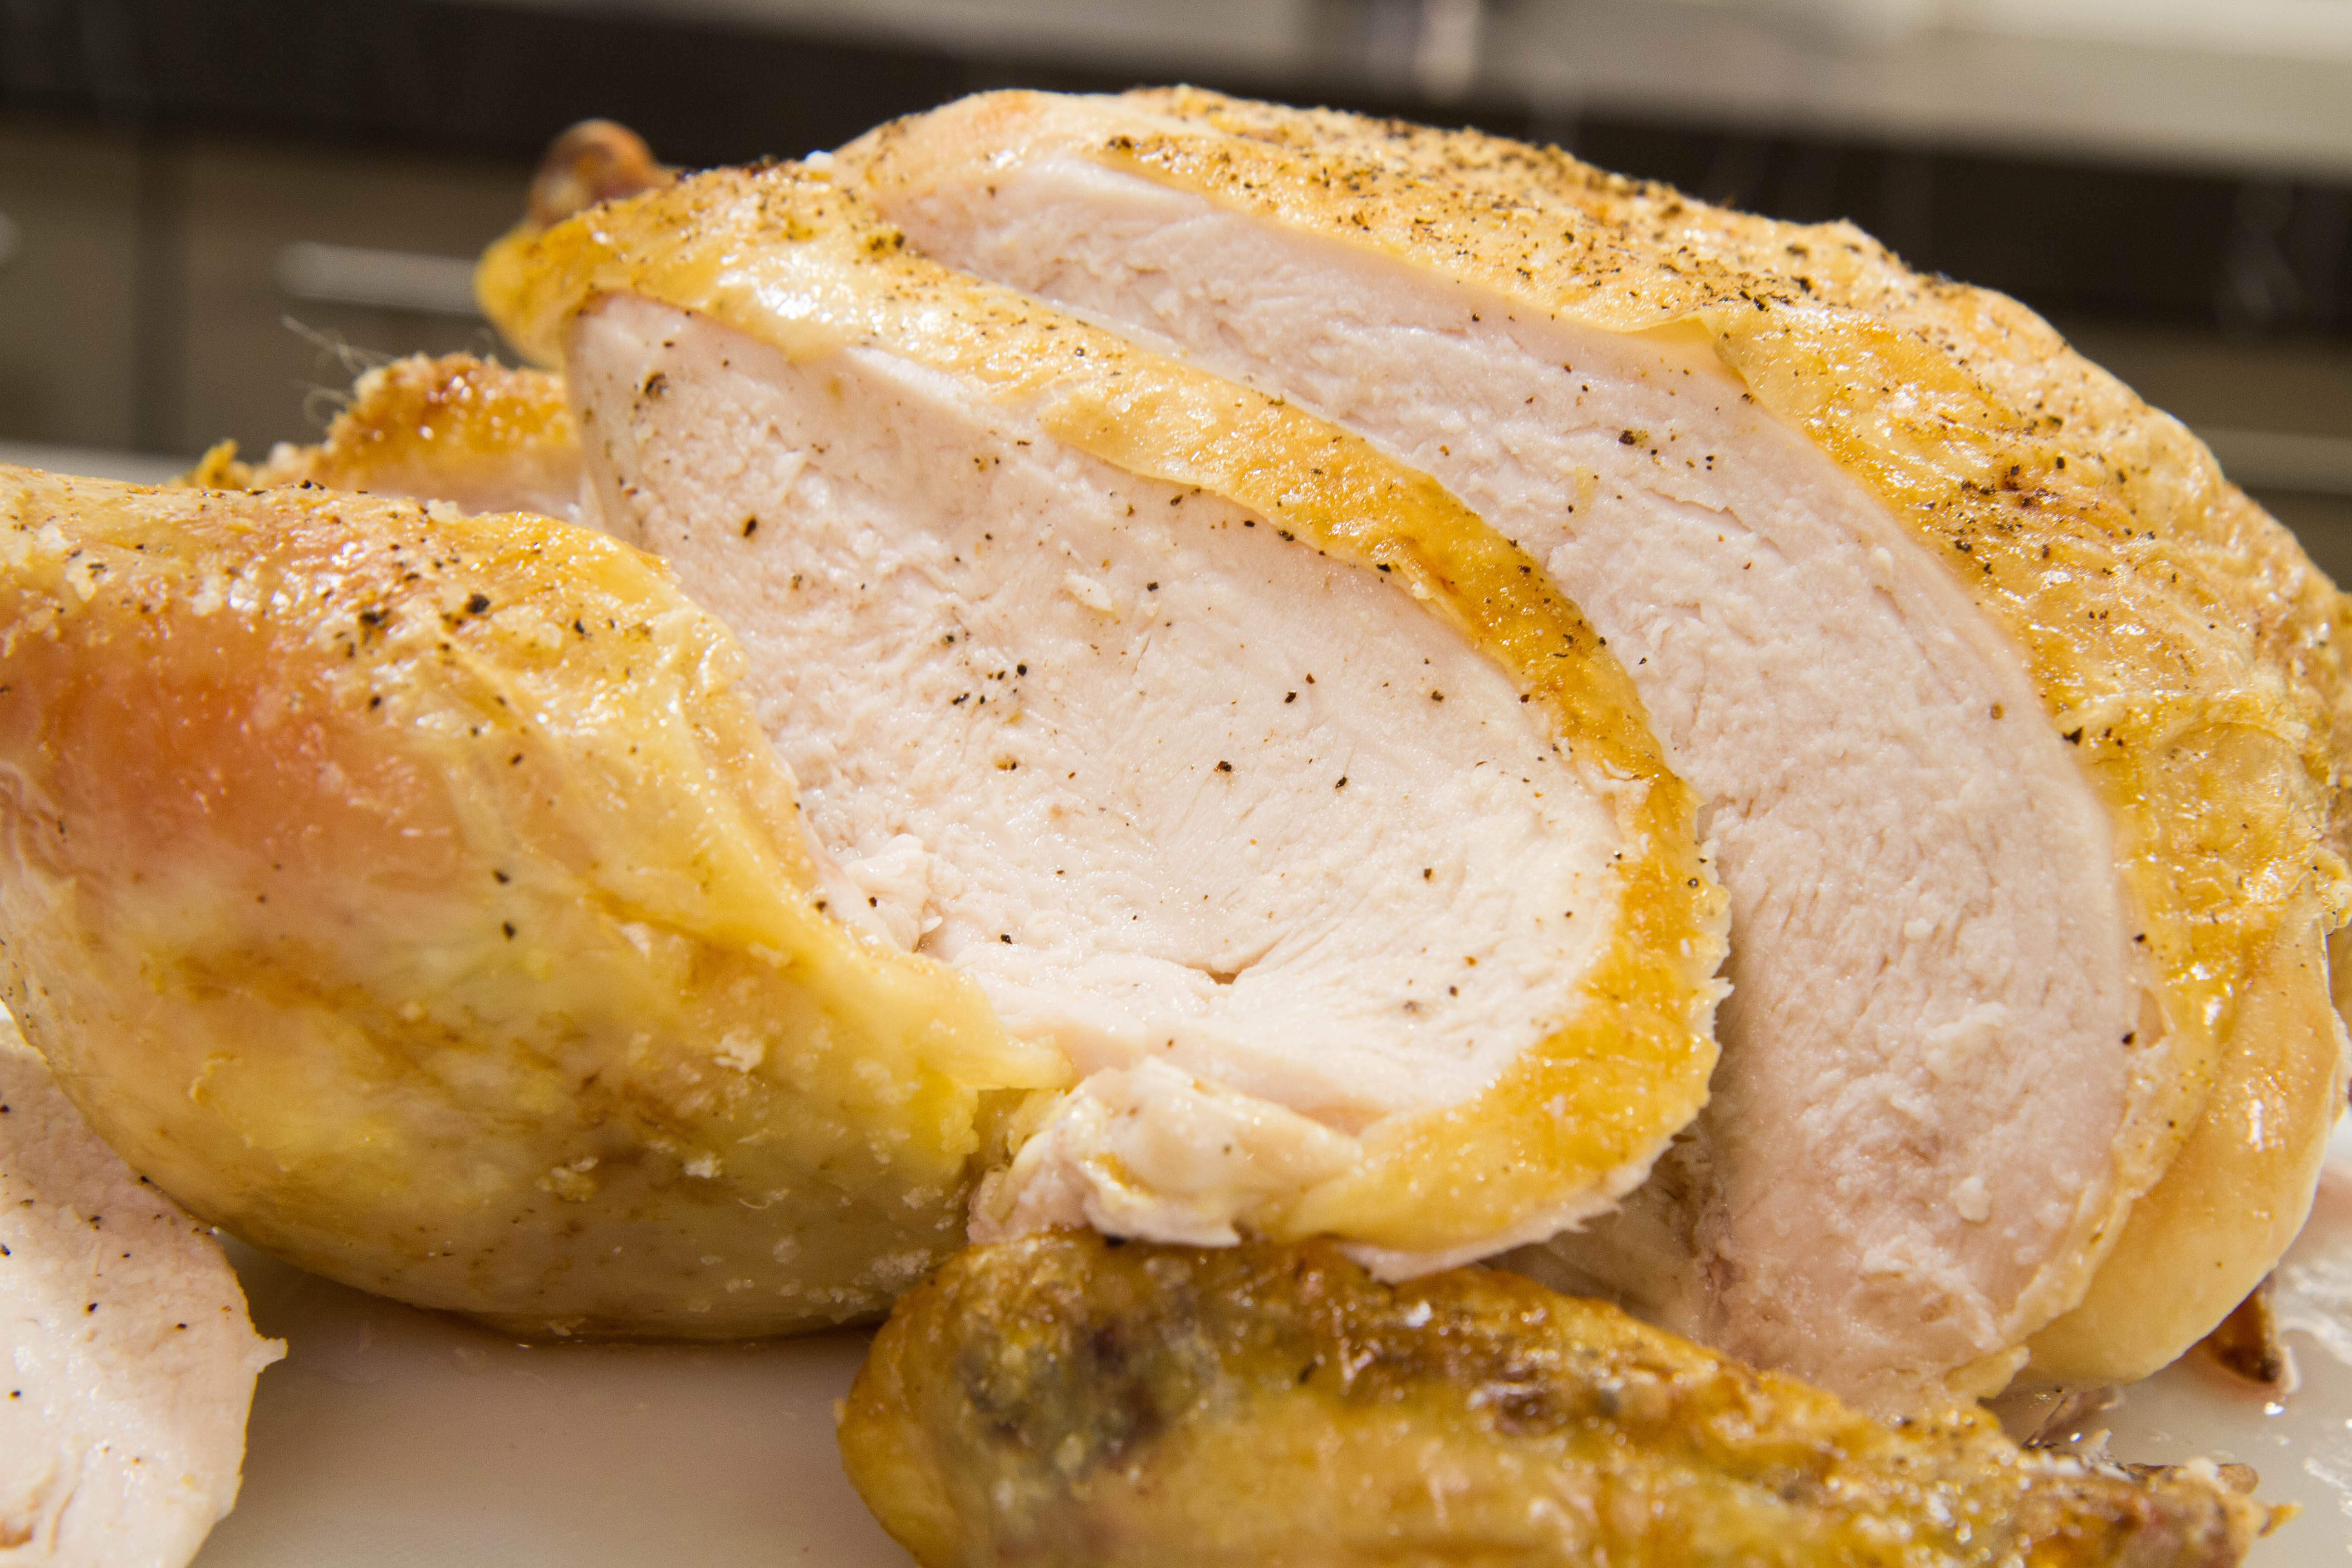 temp for chicken breast in oven